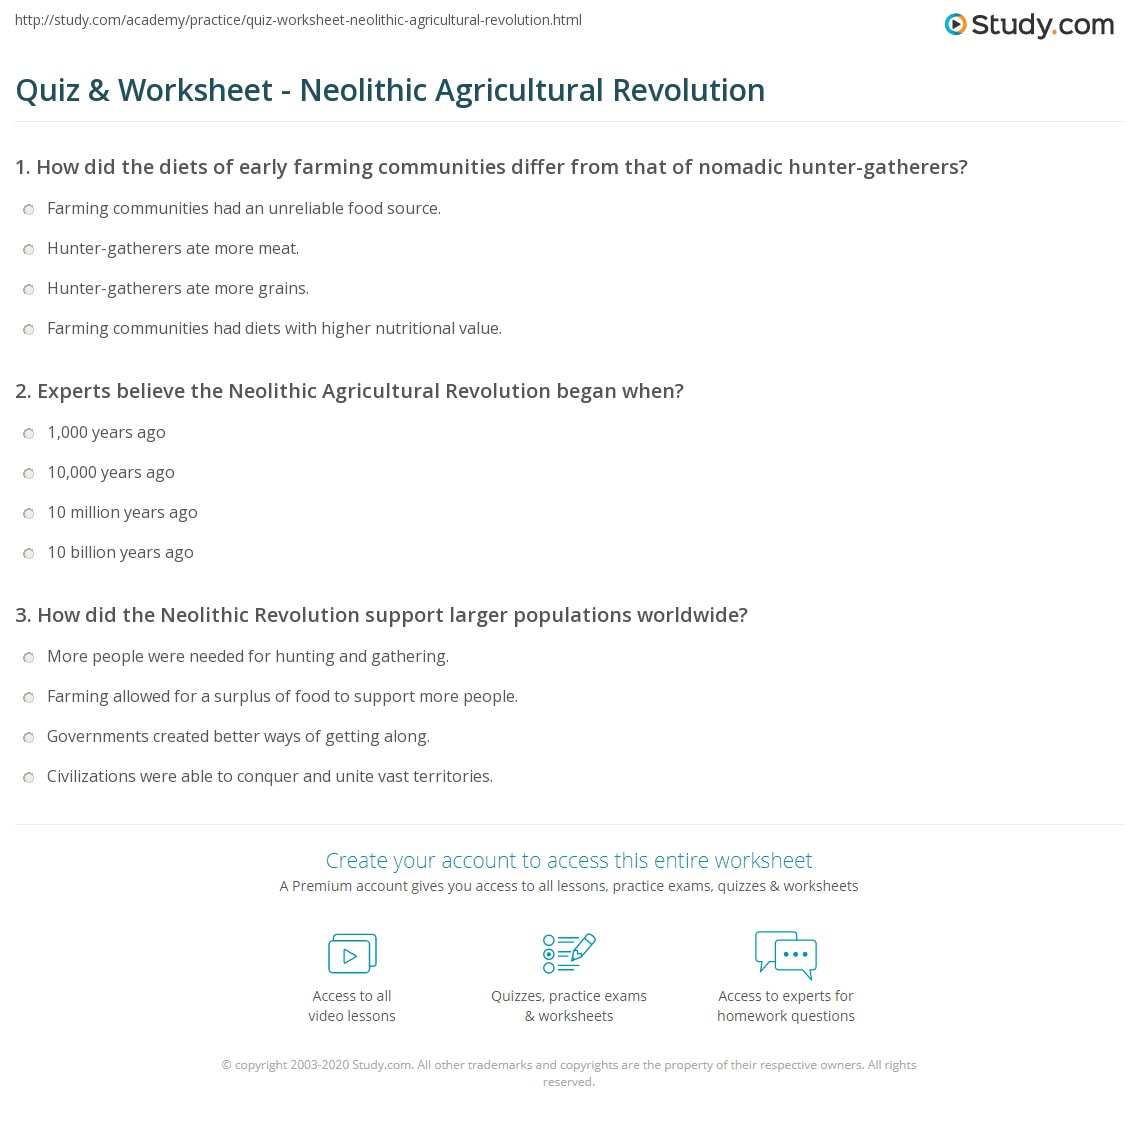 neolithic revolution worksheets switchconf quiz worksheet neolithic agricultural revolution study com